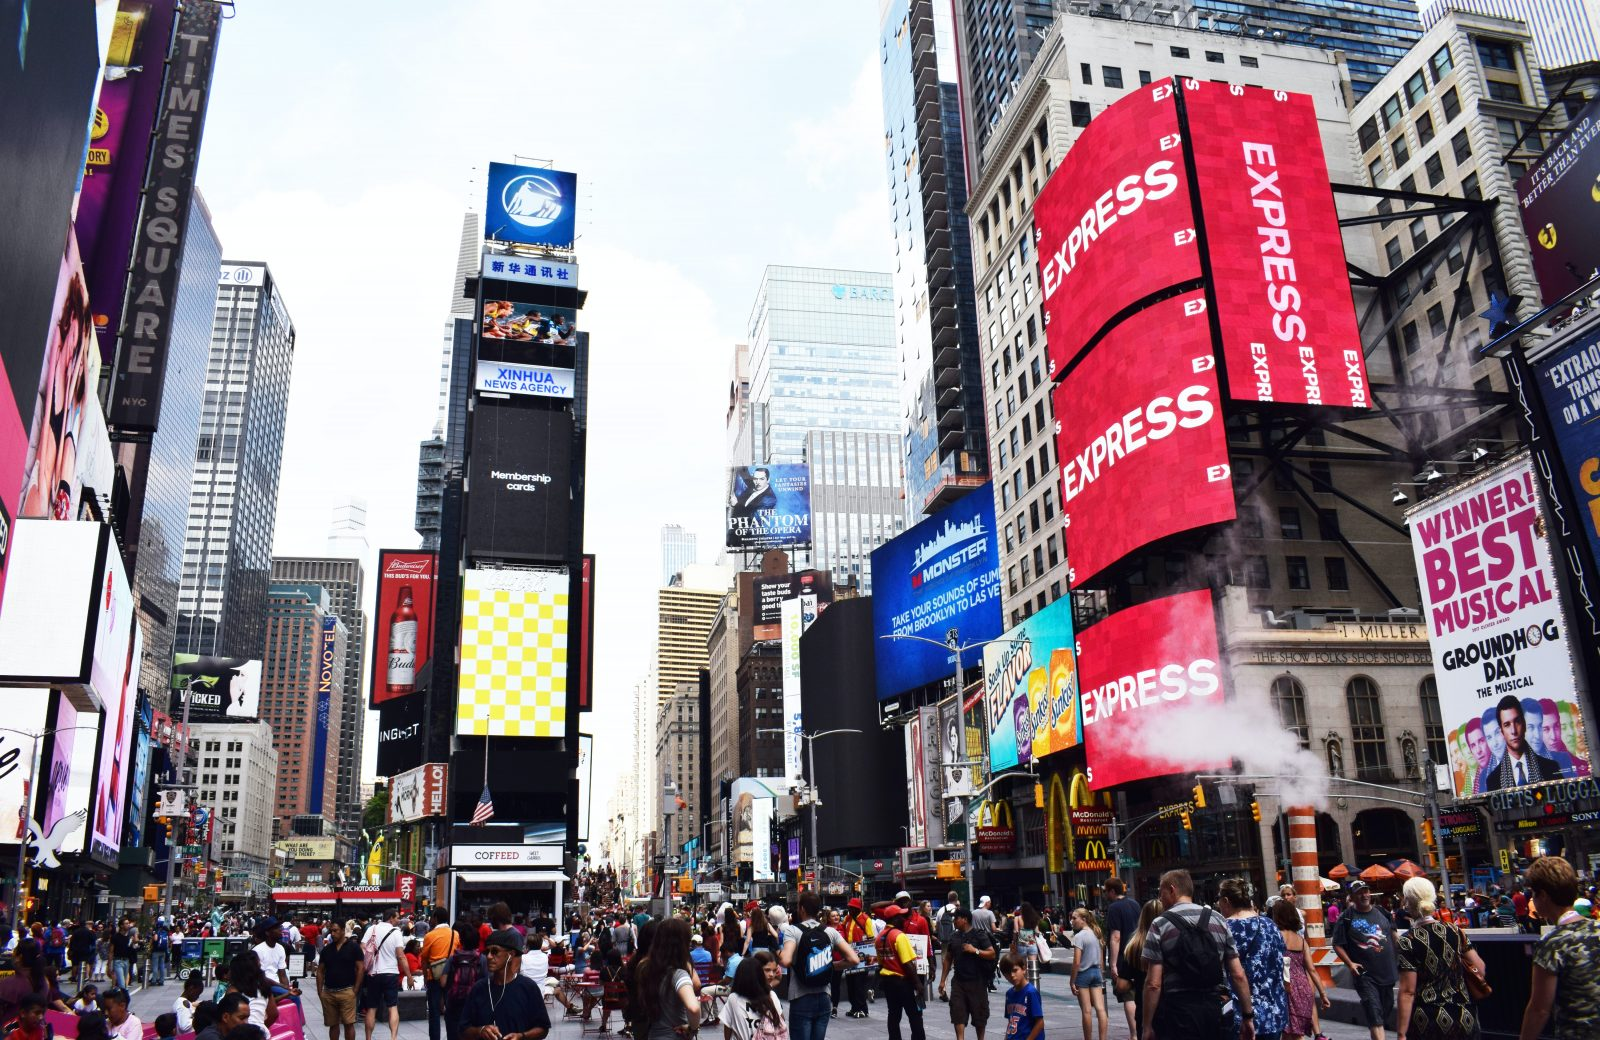 New York Times Square, New York City